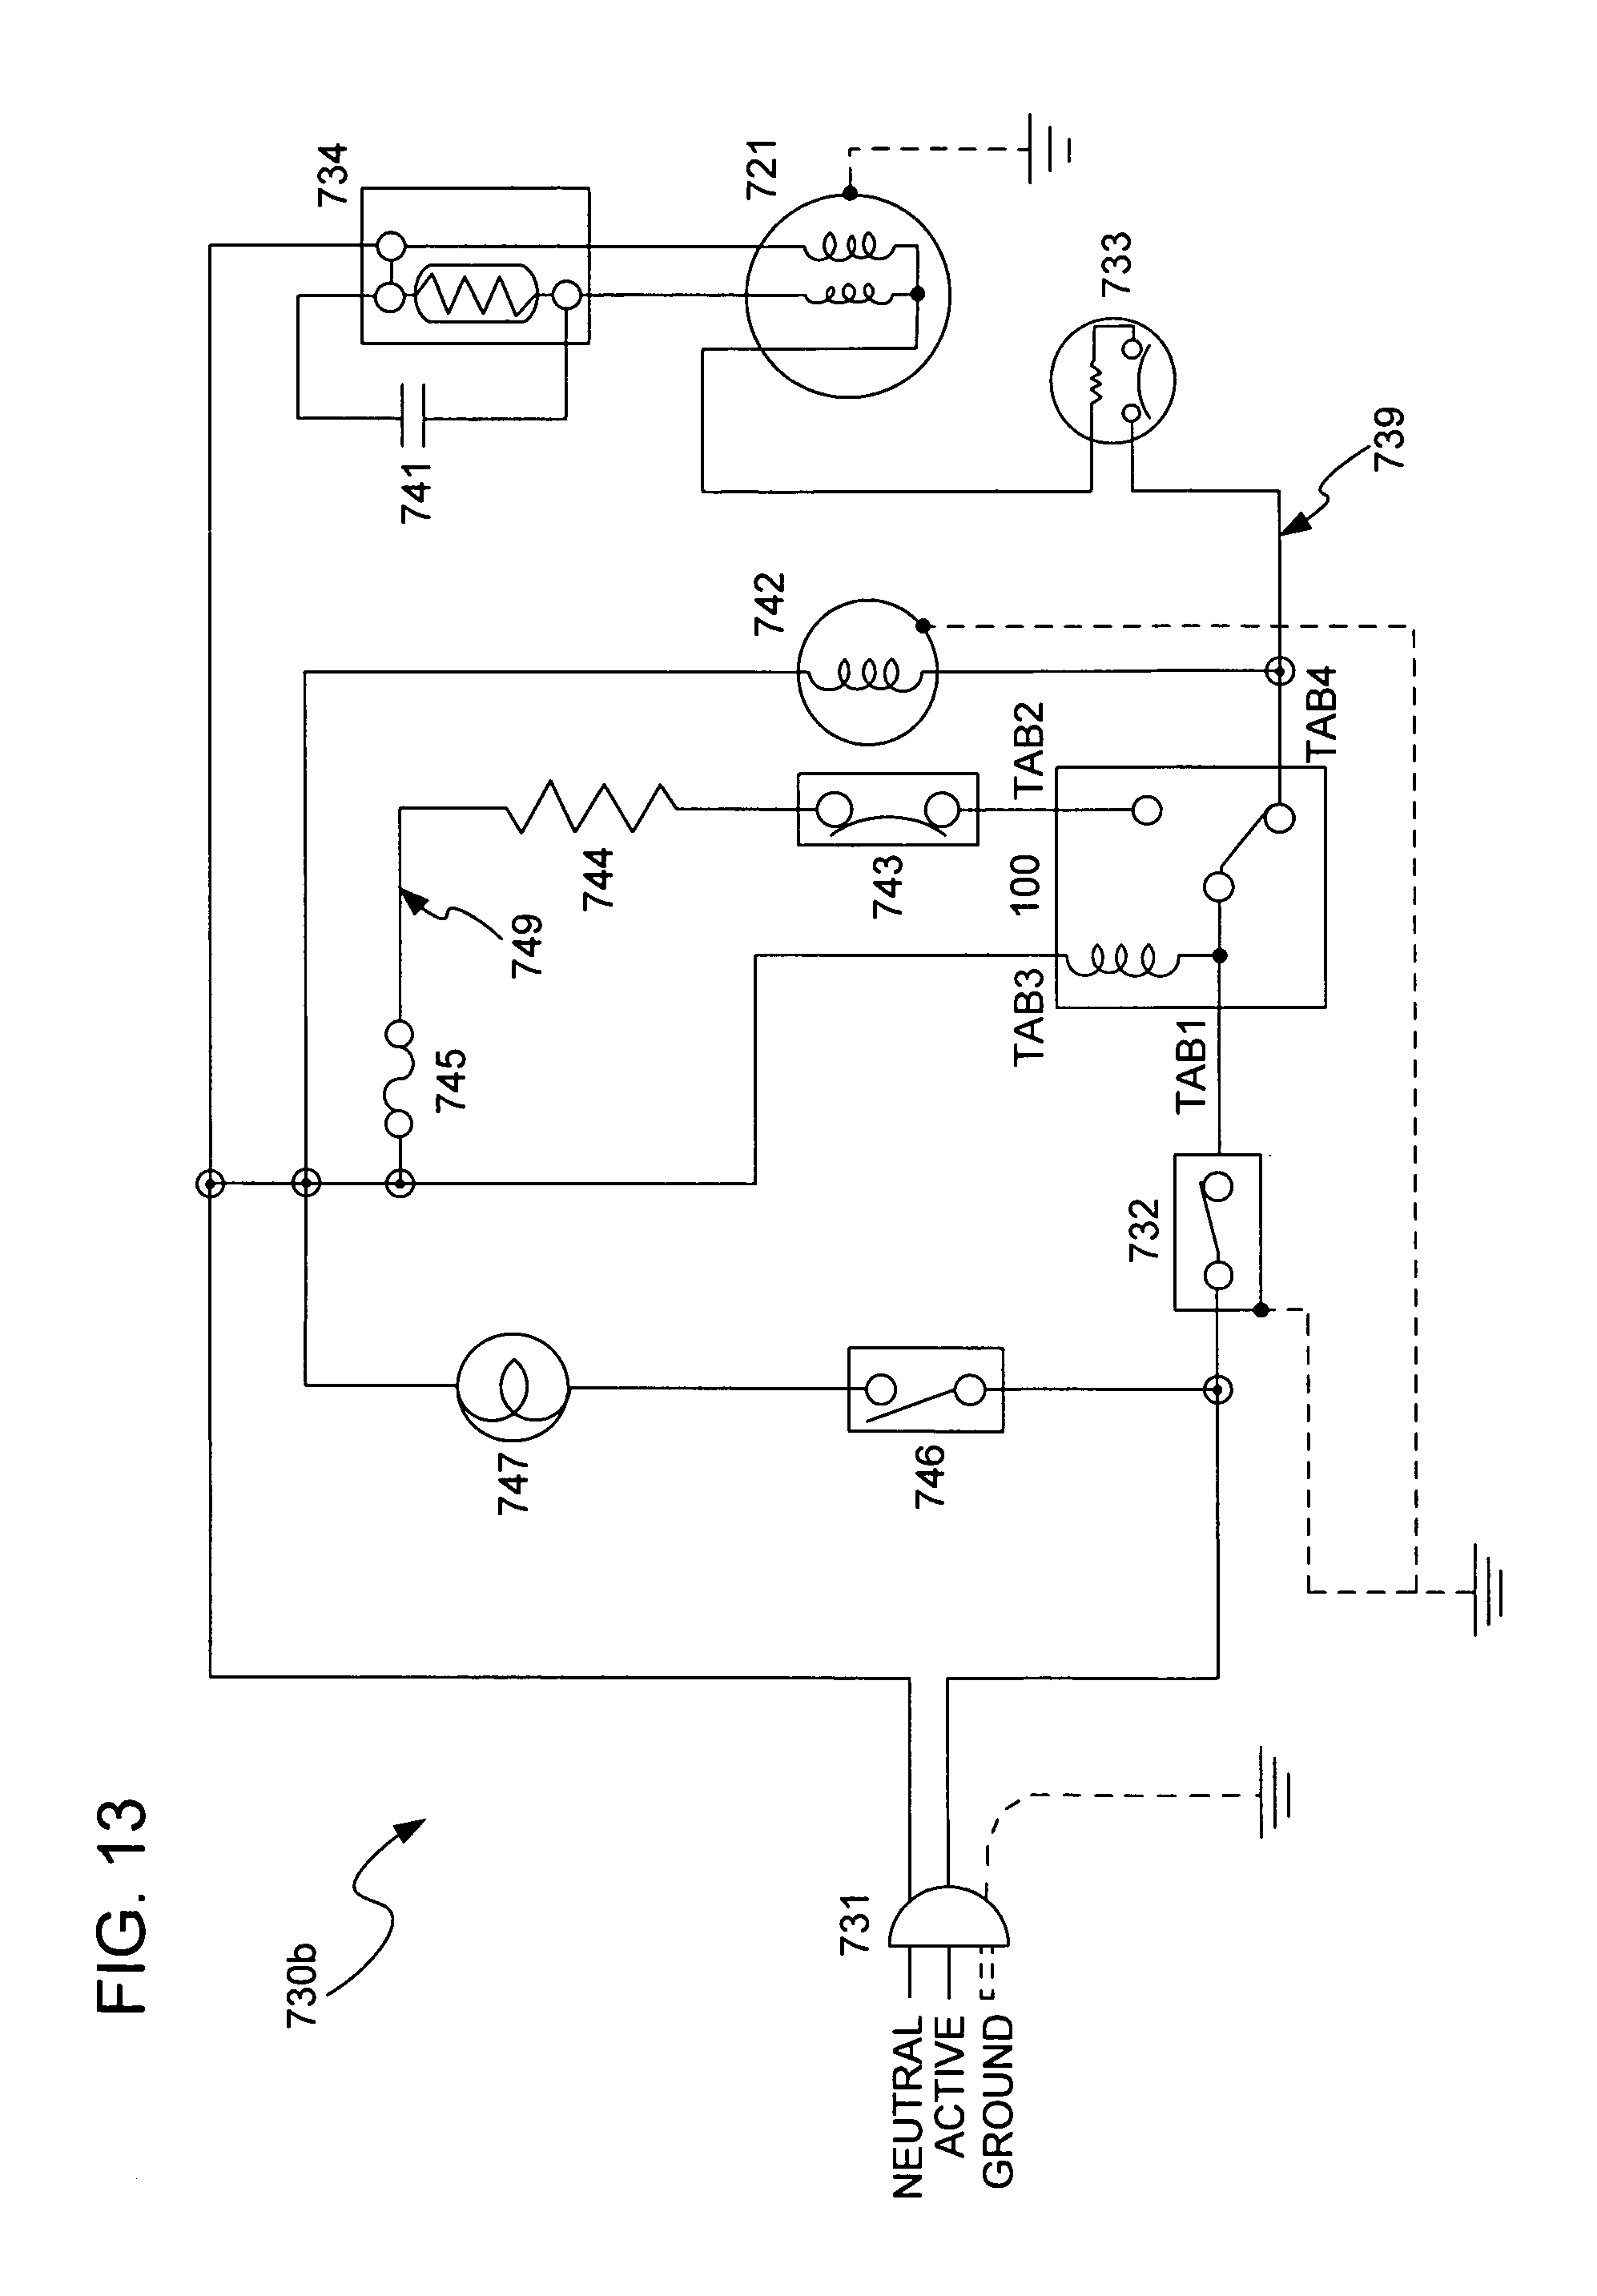 US20110067423A1 20110324 D00013?resize=665%2C956 diagrams 645471 paragon defrost timer wiring diagram paragon paragon 8145 20 wiring diagram at panicattacktreatment.co